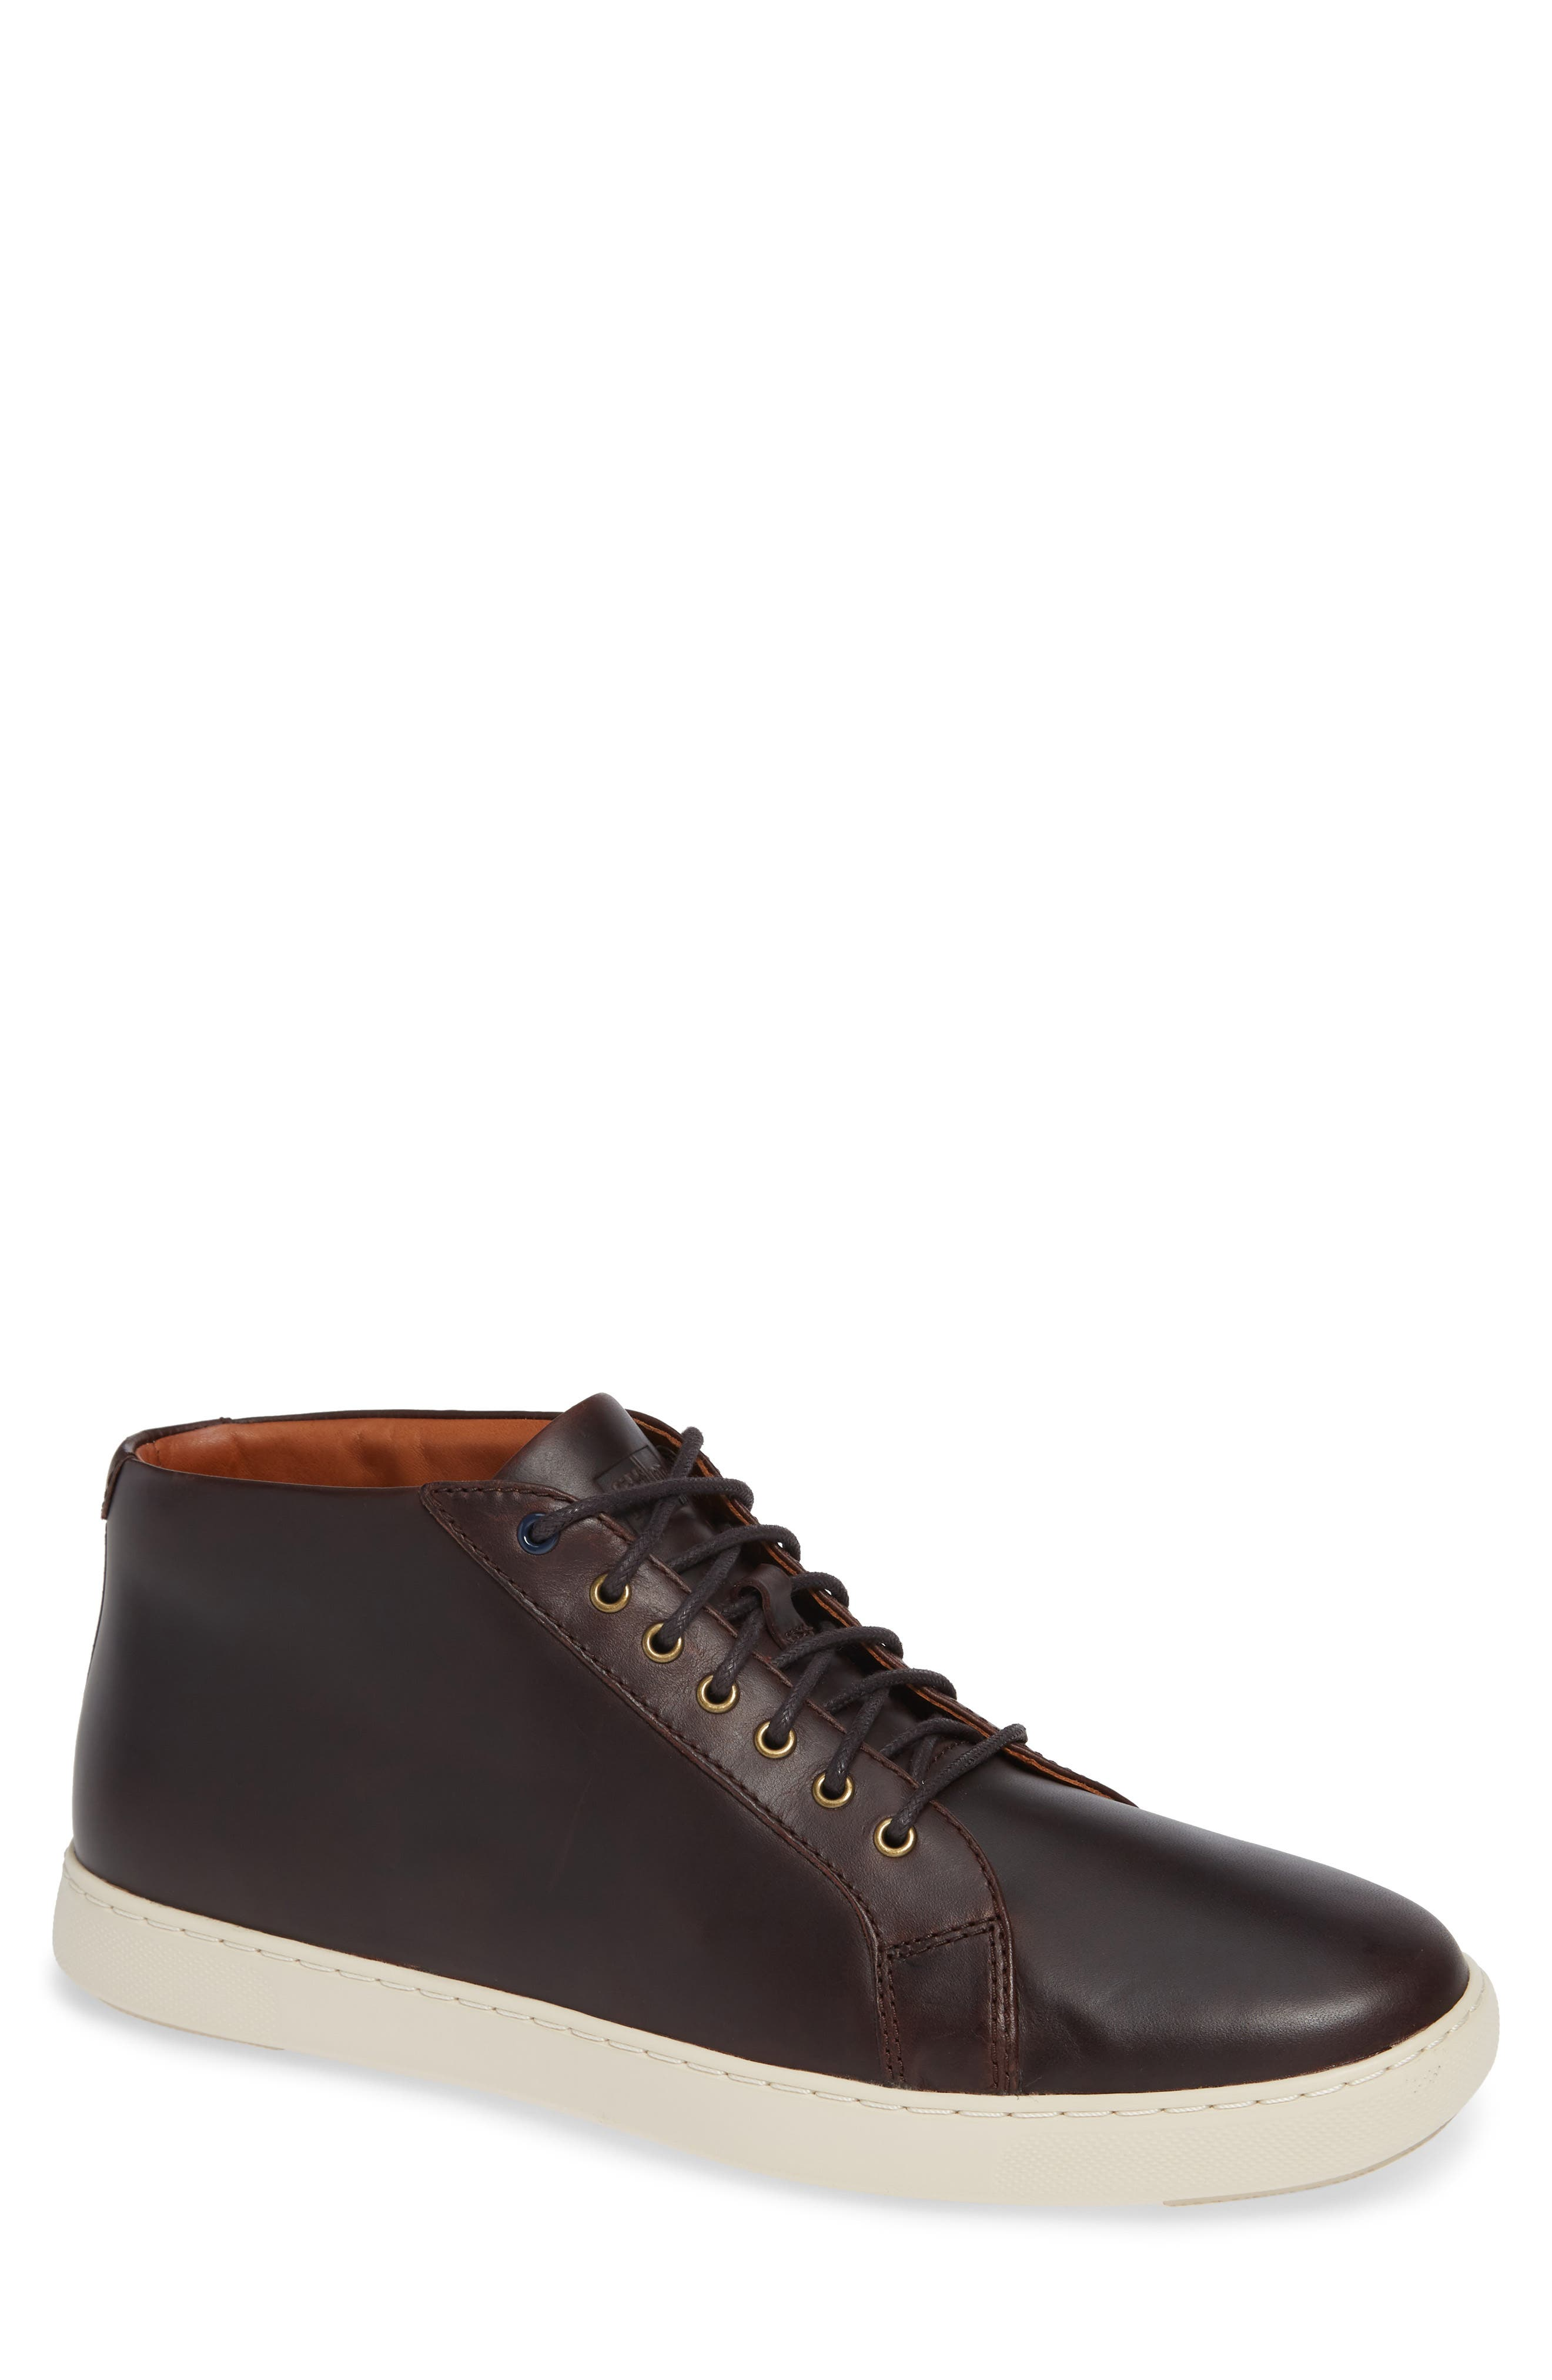 FITFLOP ANDOR HIGH TOP LACE-UP SNEAKER